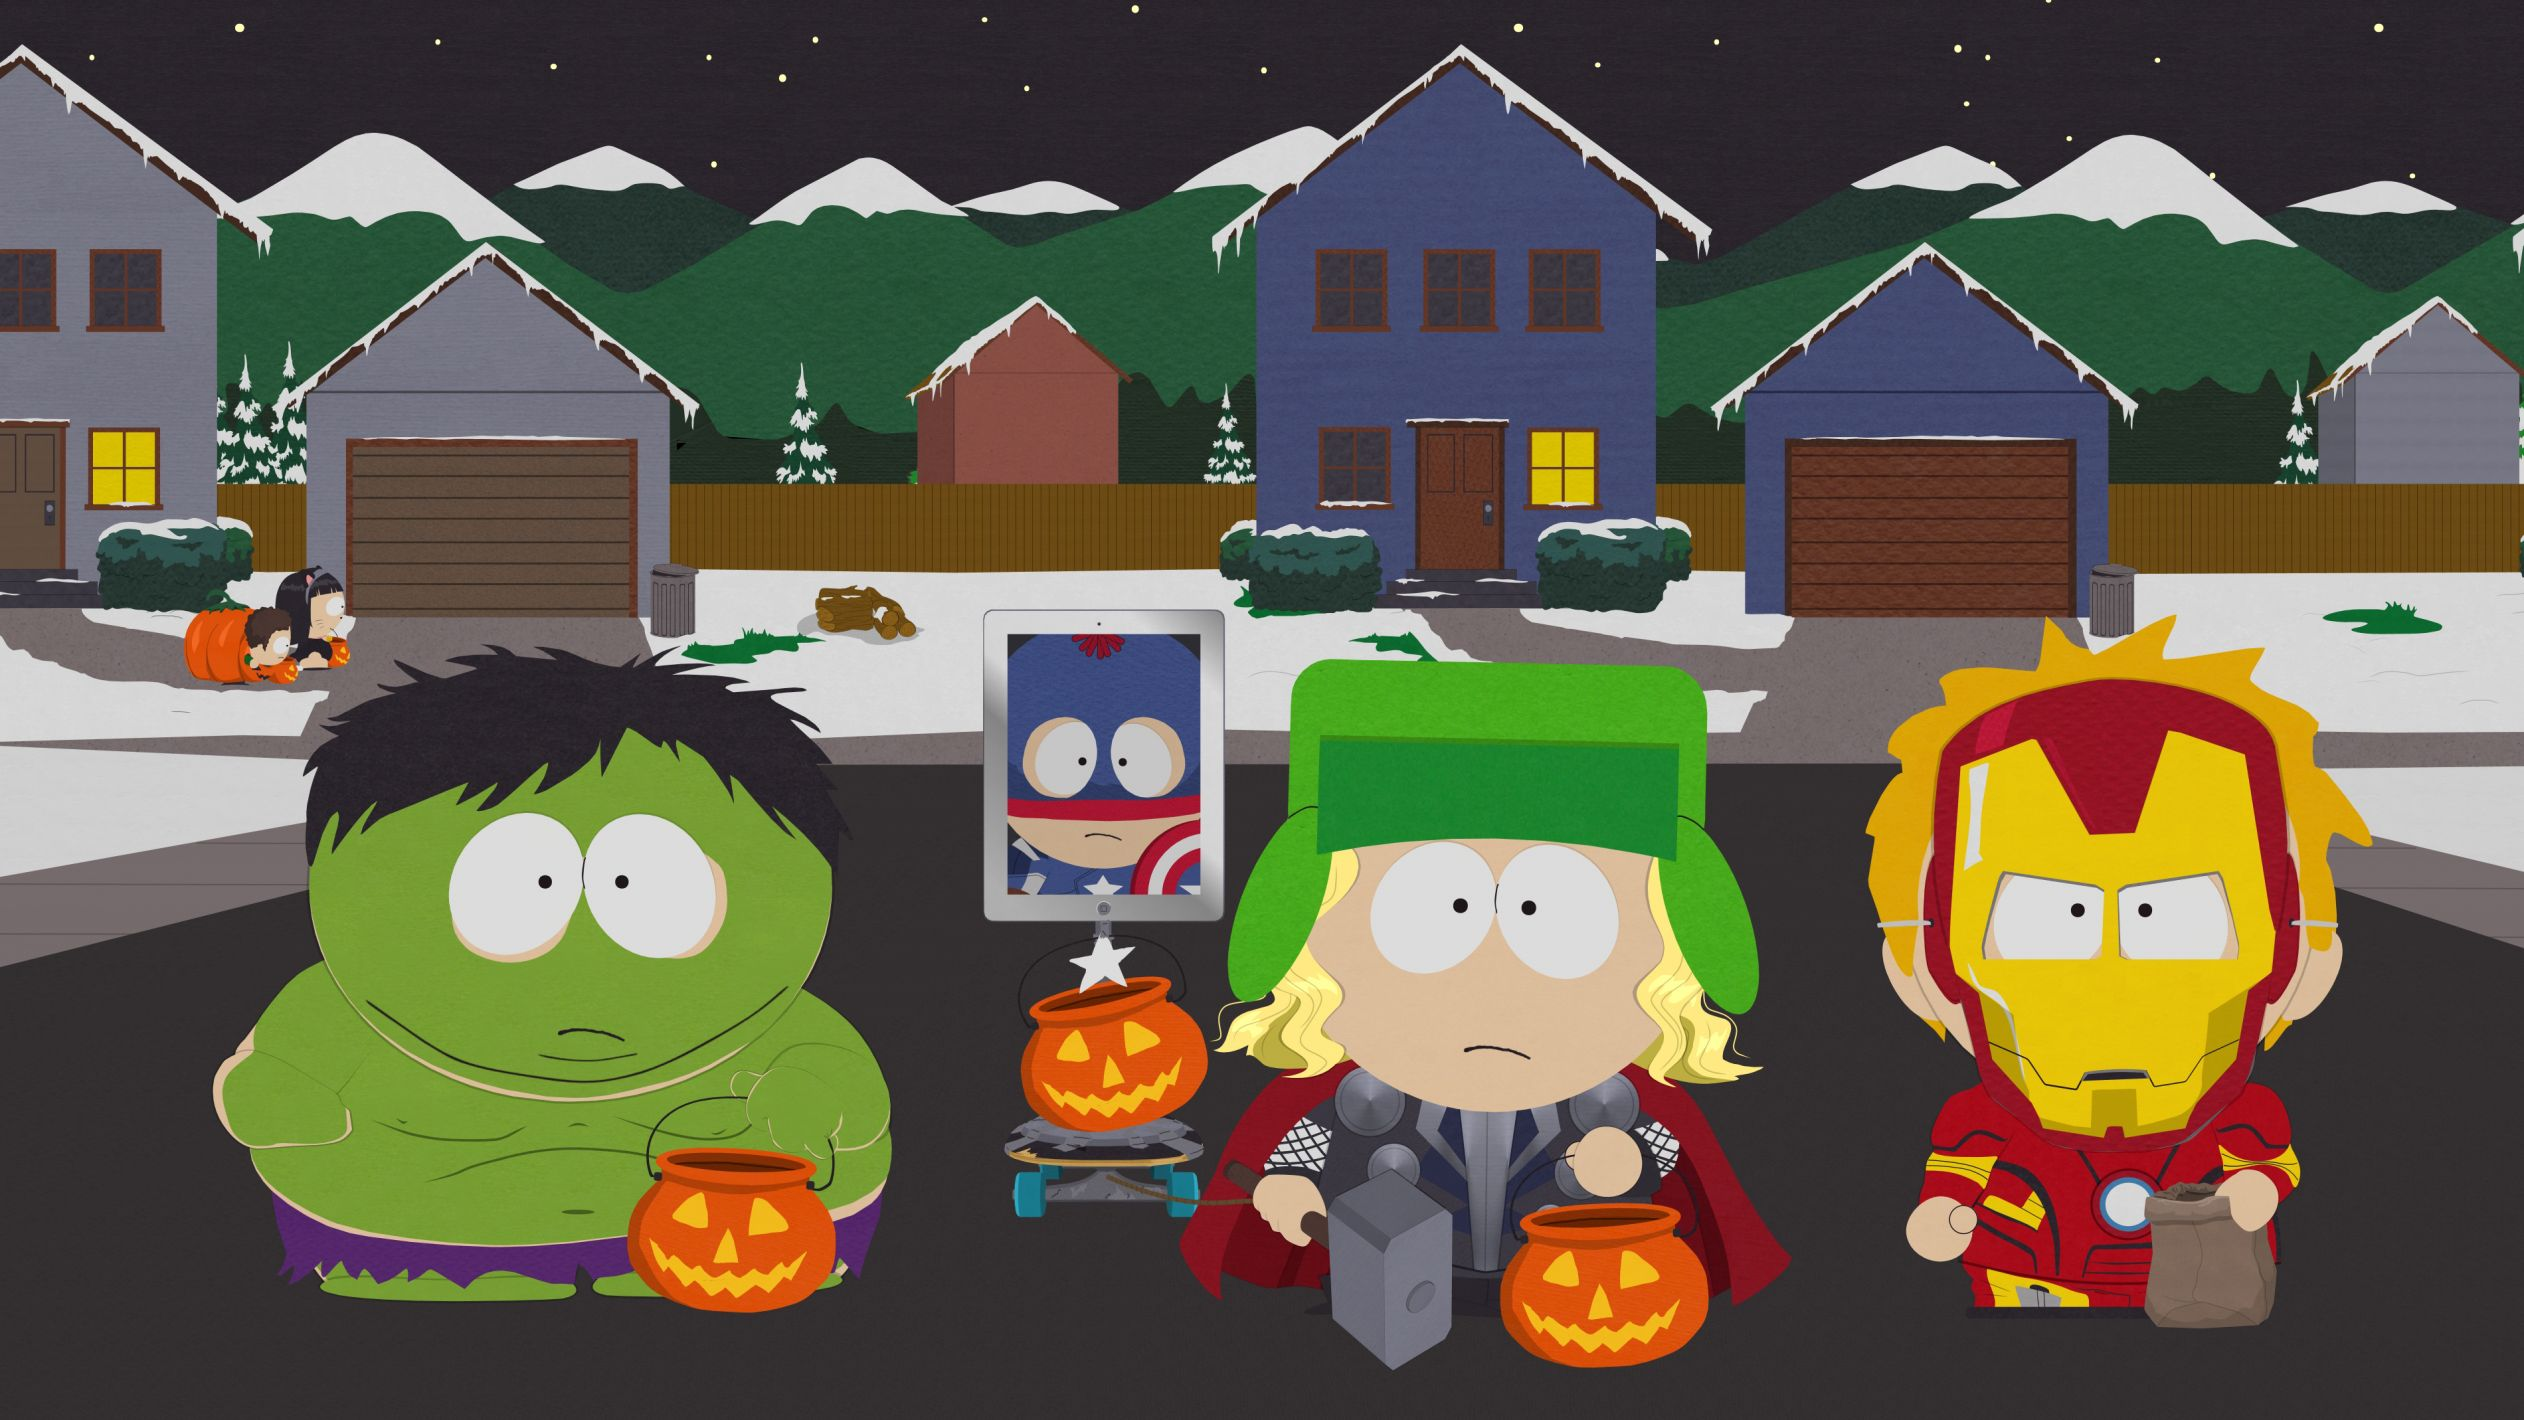 South Park Halloween Blank Template - Imgflip